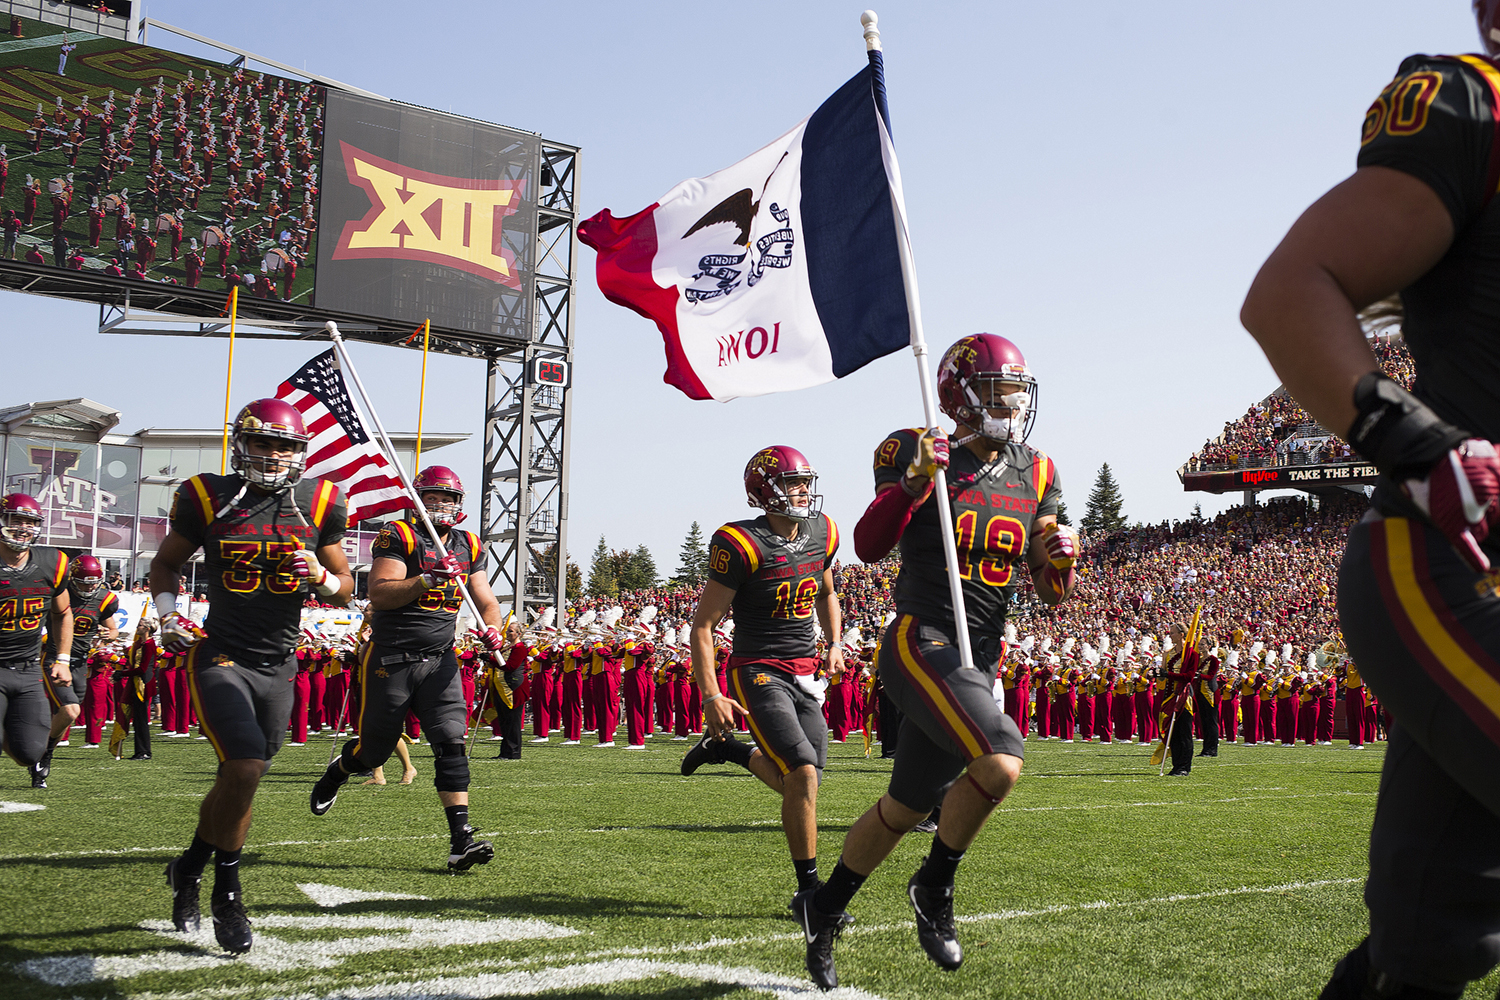 Iowa State players take to the field during the Iowa/Iowa State game for the Cy-Hawk trophy in Jack Trice Stadium on Saturday, Sept. 9, 2017. The Hawkeyes defeated the Cyclones, 44-41, in overtime.